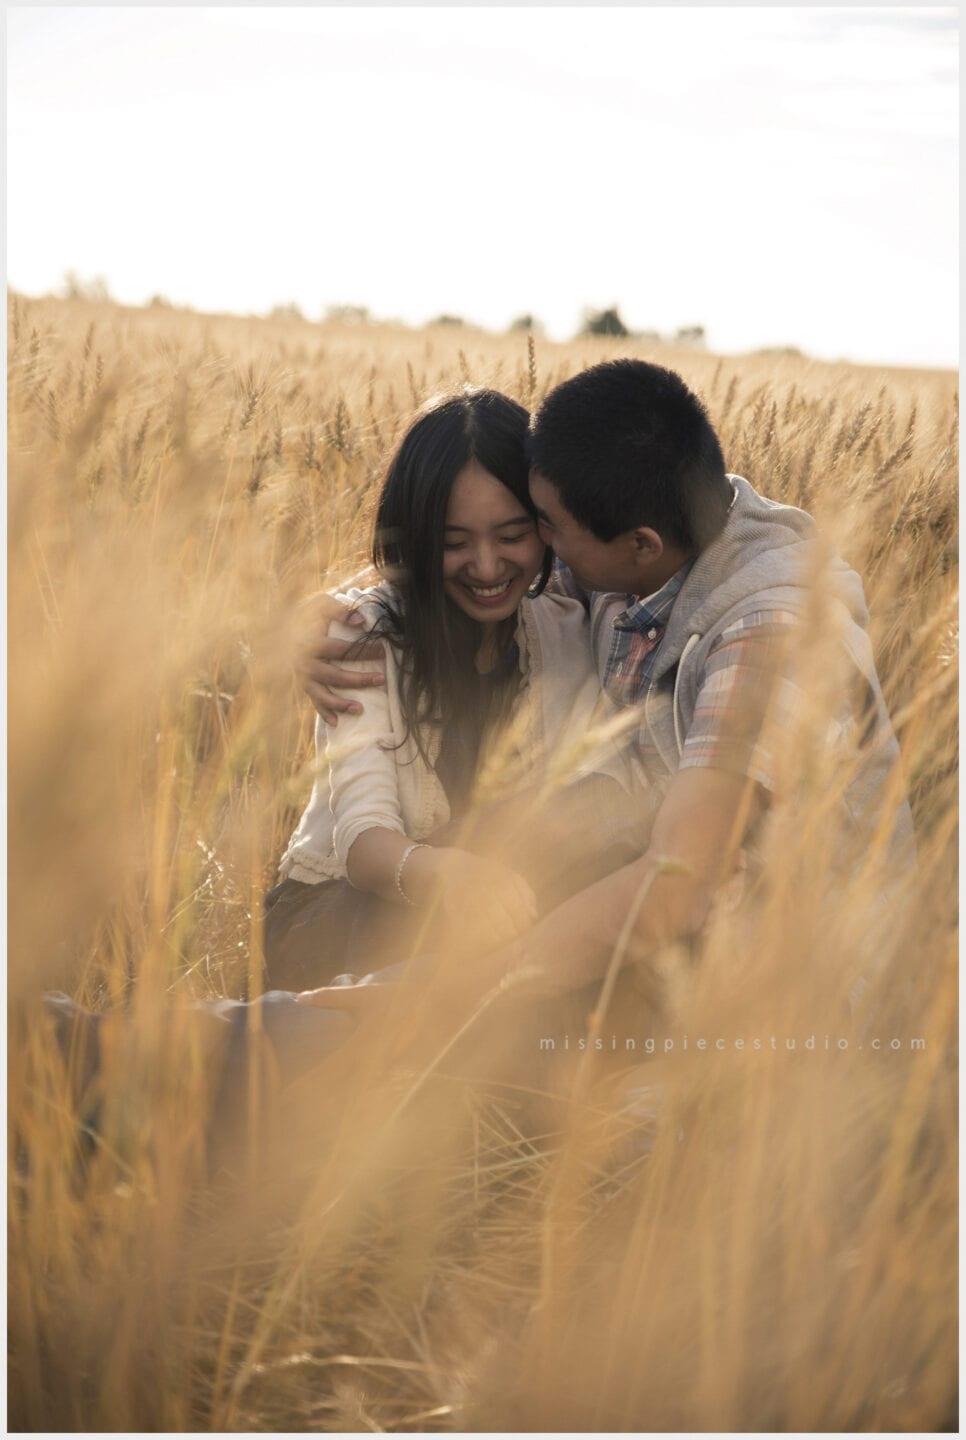 love is in the air as the couple spend time in a beautiful alberta field